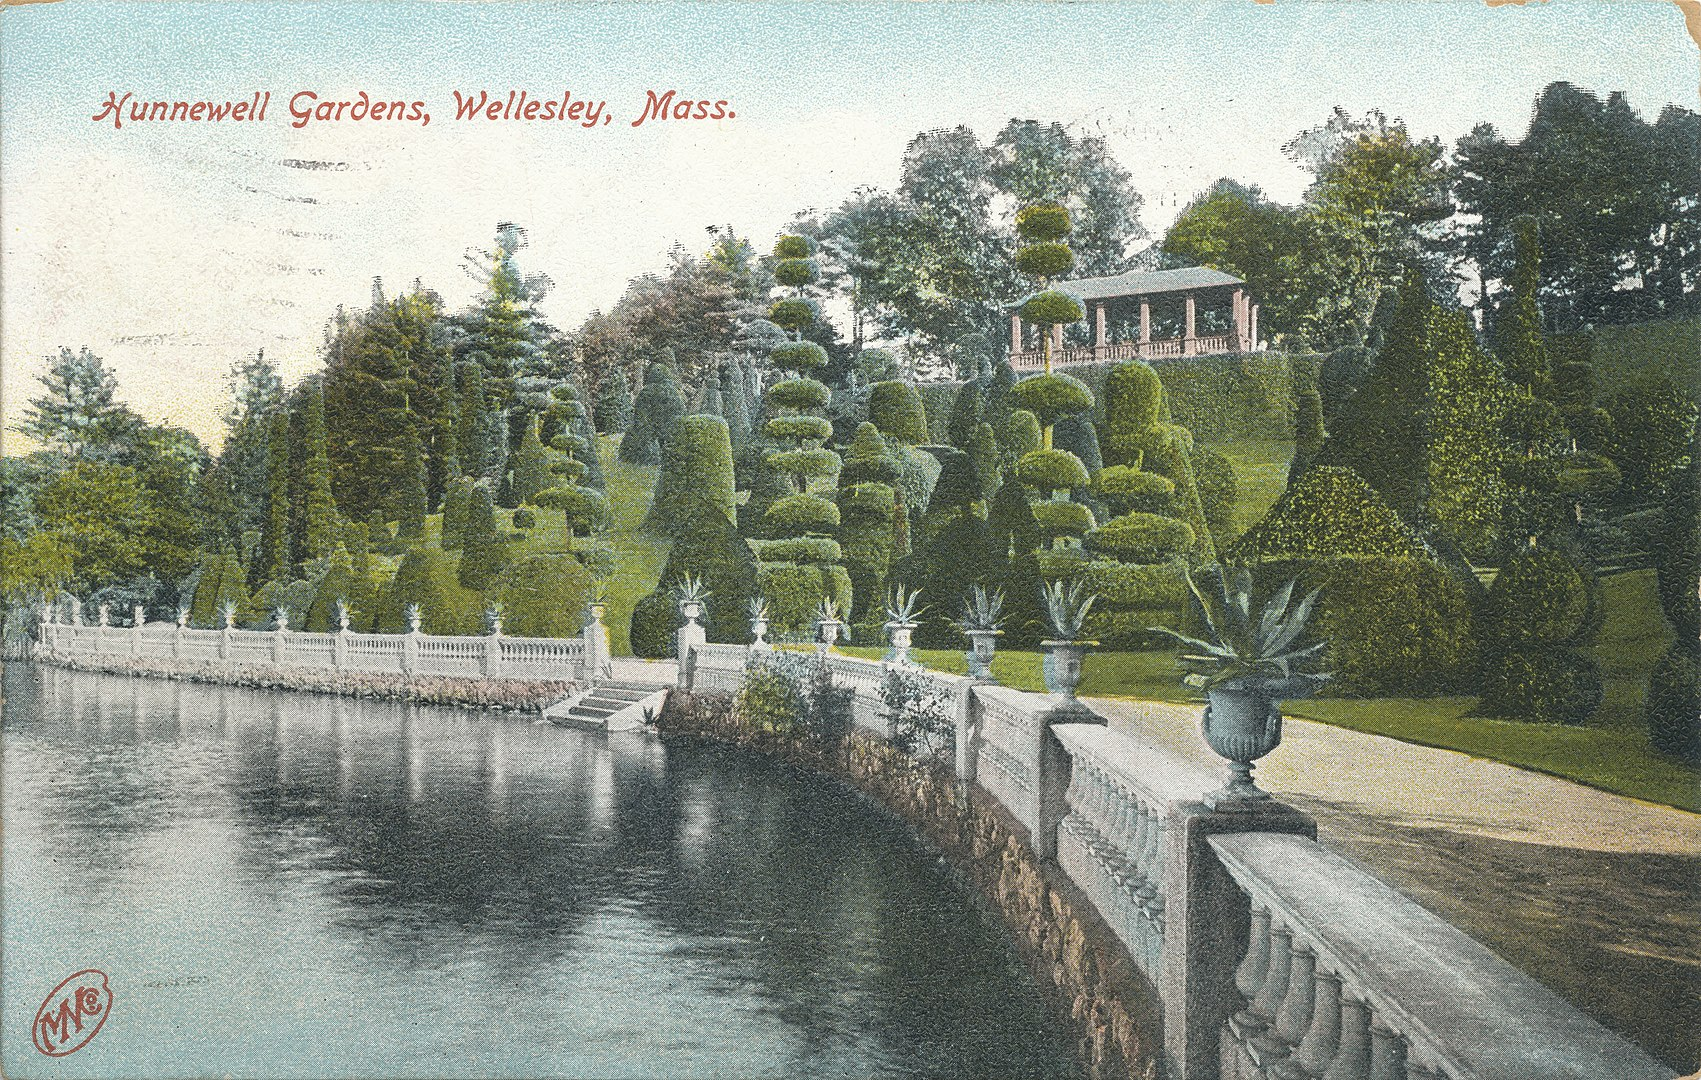 1701px-Hunnewell_Gardens,_on_the_shore_of_Lake_Waban,_Wellesley,_MA_(1909)